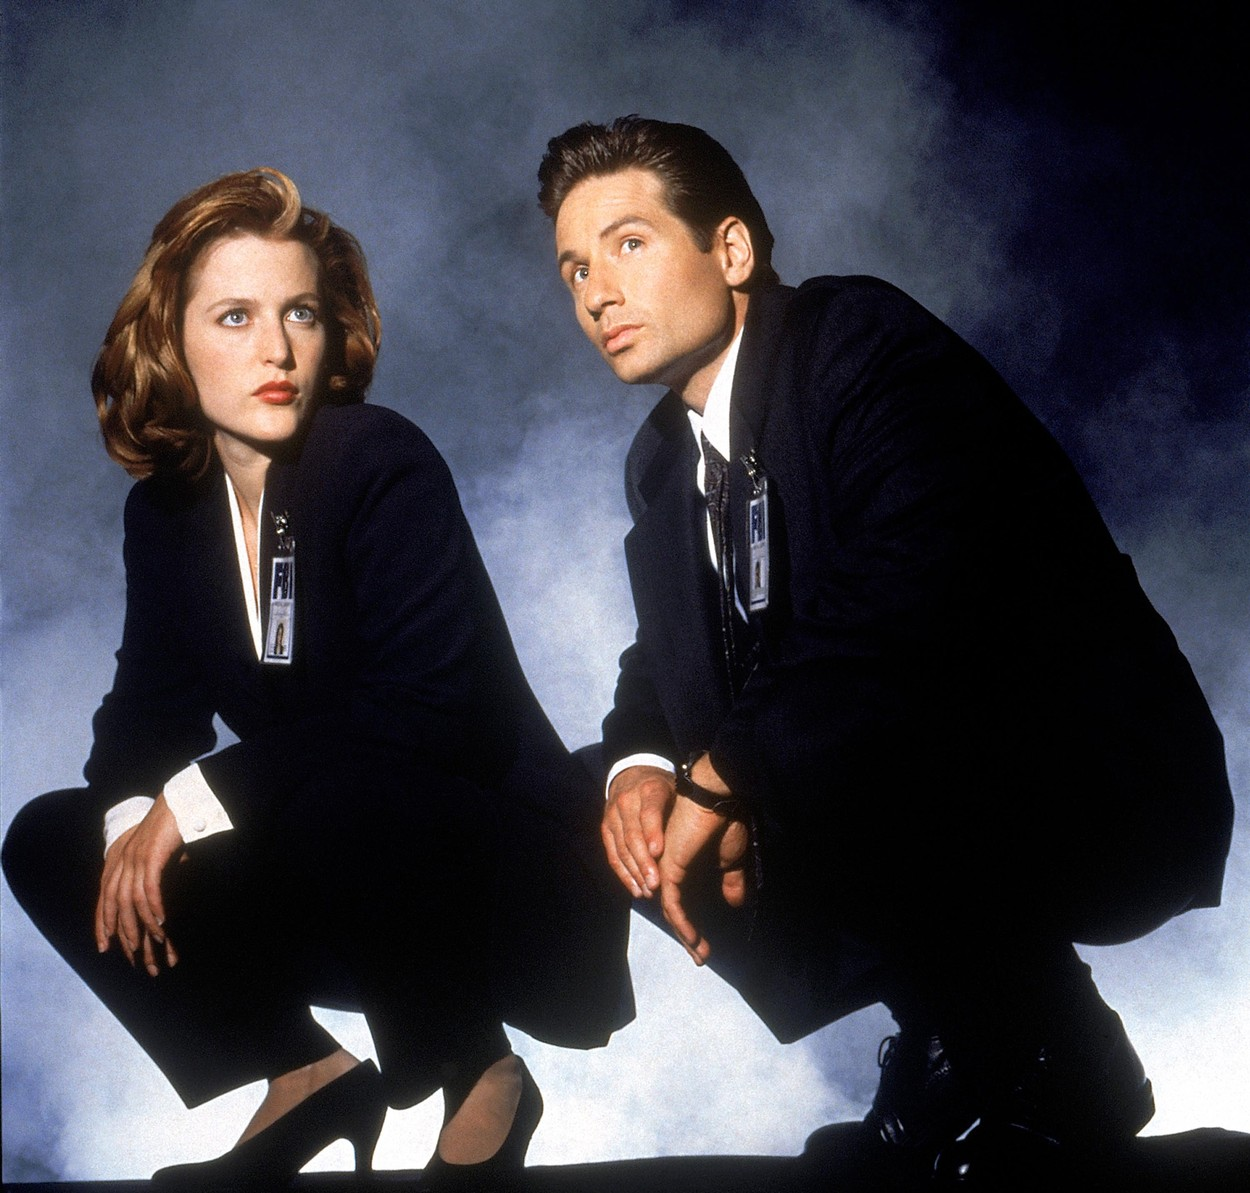 Gillian Anderson, David Duchovny (Fox Mulder) in TV serie THE X-FILES : created by Chris Carter (1993) starring Gillian Anderson, David Duchovny, Mitch Pileggi, Joel McHale; Fantastic; Fantastique; Science fiction; television; serie internationnal; american; candian; serie; TV; X-FILES : AUX FRONTIERES DU REEL; Fox Television; Agents FBI; Fox Mulder (David Duchovny); Dana Scully (Gillian Anderson); David Duchovny Filmography; actor; acteur; cinema; NOTE: this is a PR photo. Sunsetbox does not claim any Copyright or License in the attached material. Fees charged by Sunsetbox are for Sunsetbox's services only, and do not, nor are they intended to, convey to the user any ownership of Copyright or License in the material. By publishing this material, the user expressly agrees to indemnify and to hold Sunsetbox harmless from any claims, demands, or causes of action arising out of or connected in any way with user's publication of the material, Image: 271916570, License: Rights-managed, Restrictions: , Model Release: no, Credit line: Sunset Box / Allpix Press / Profimedia